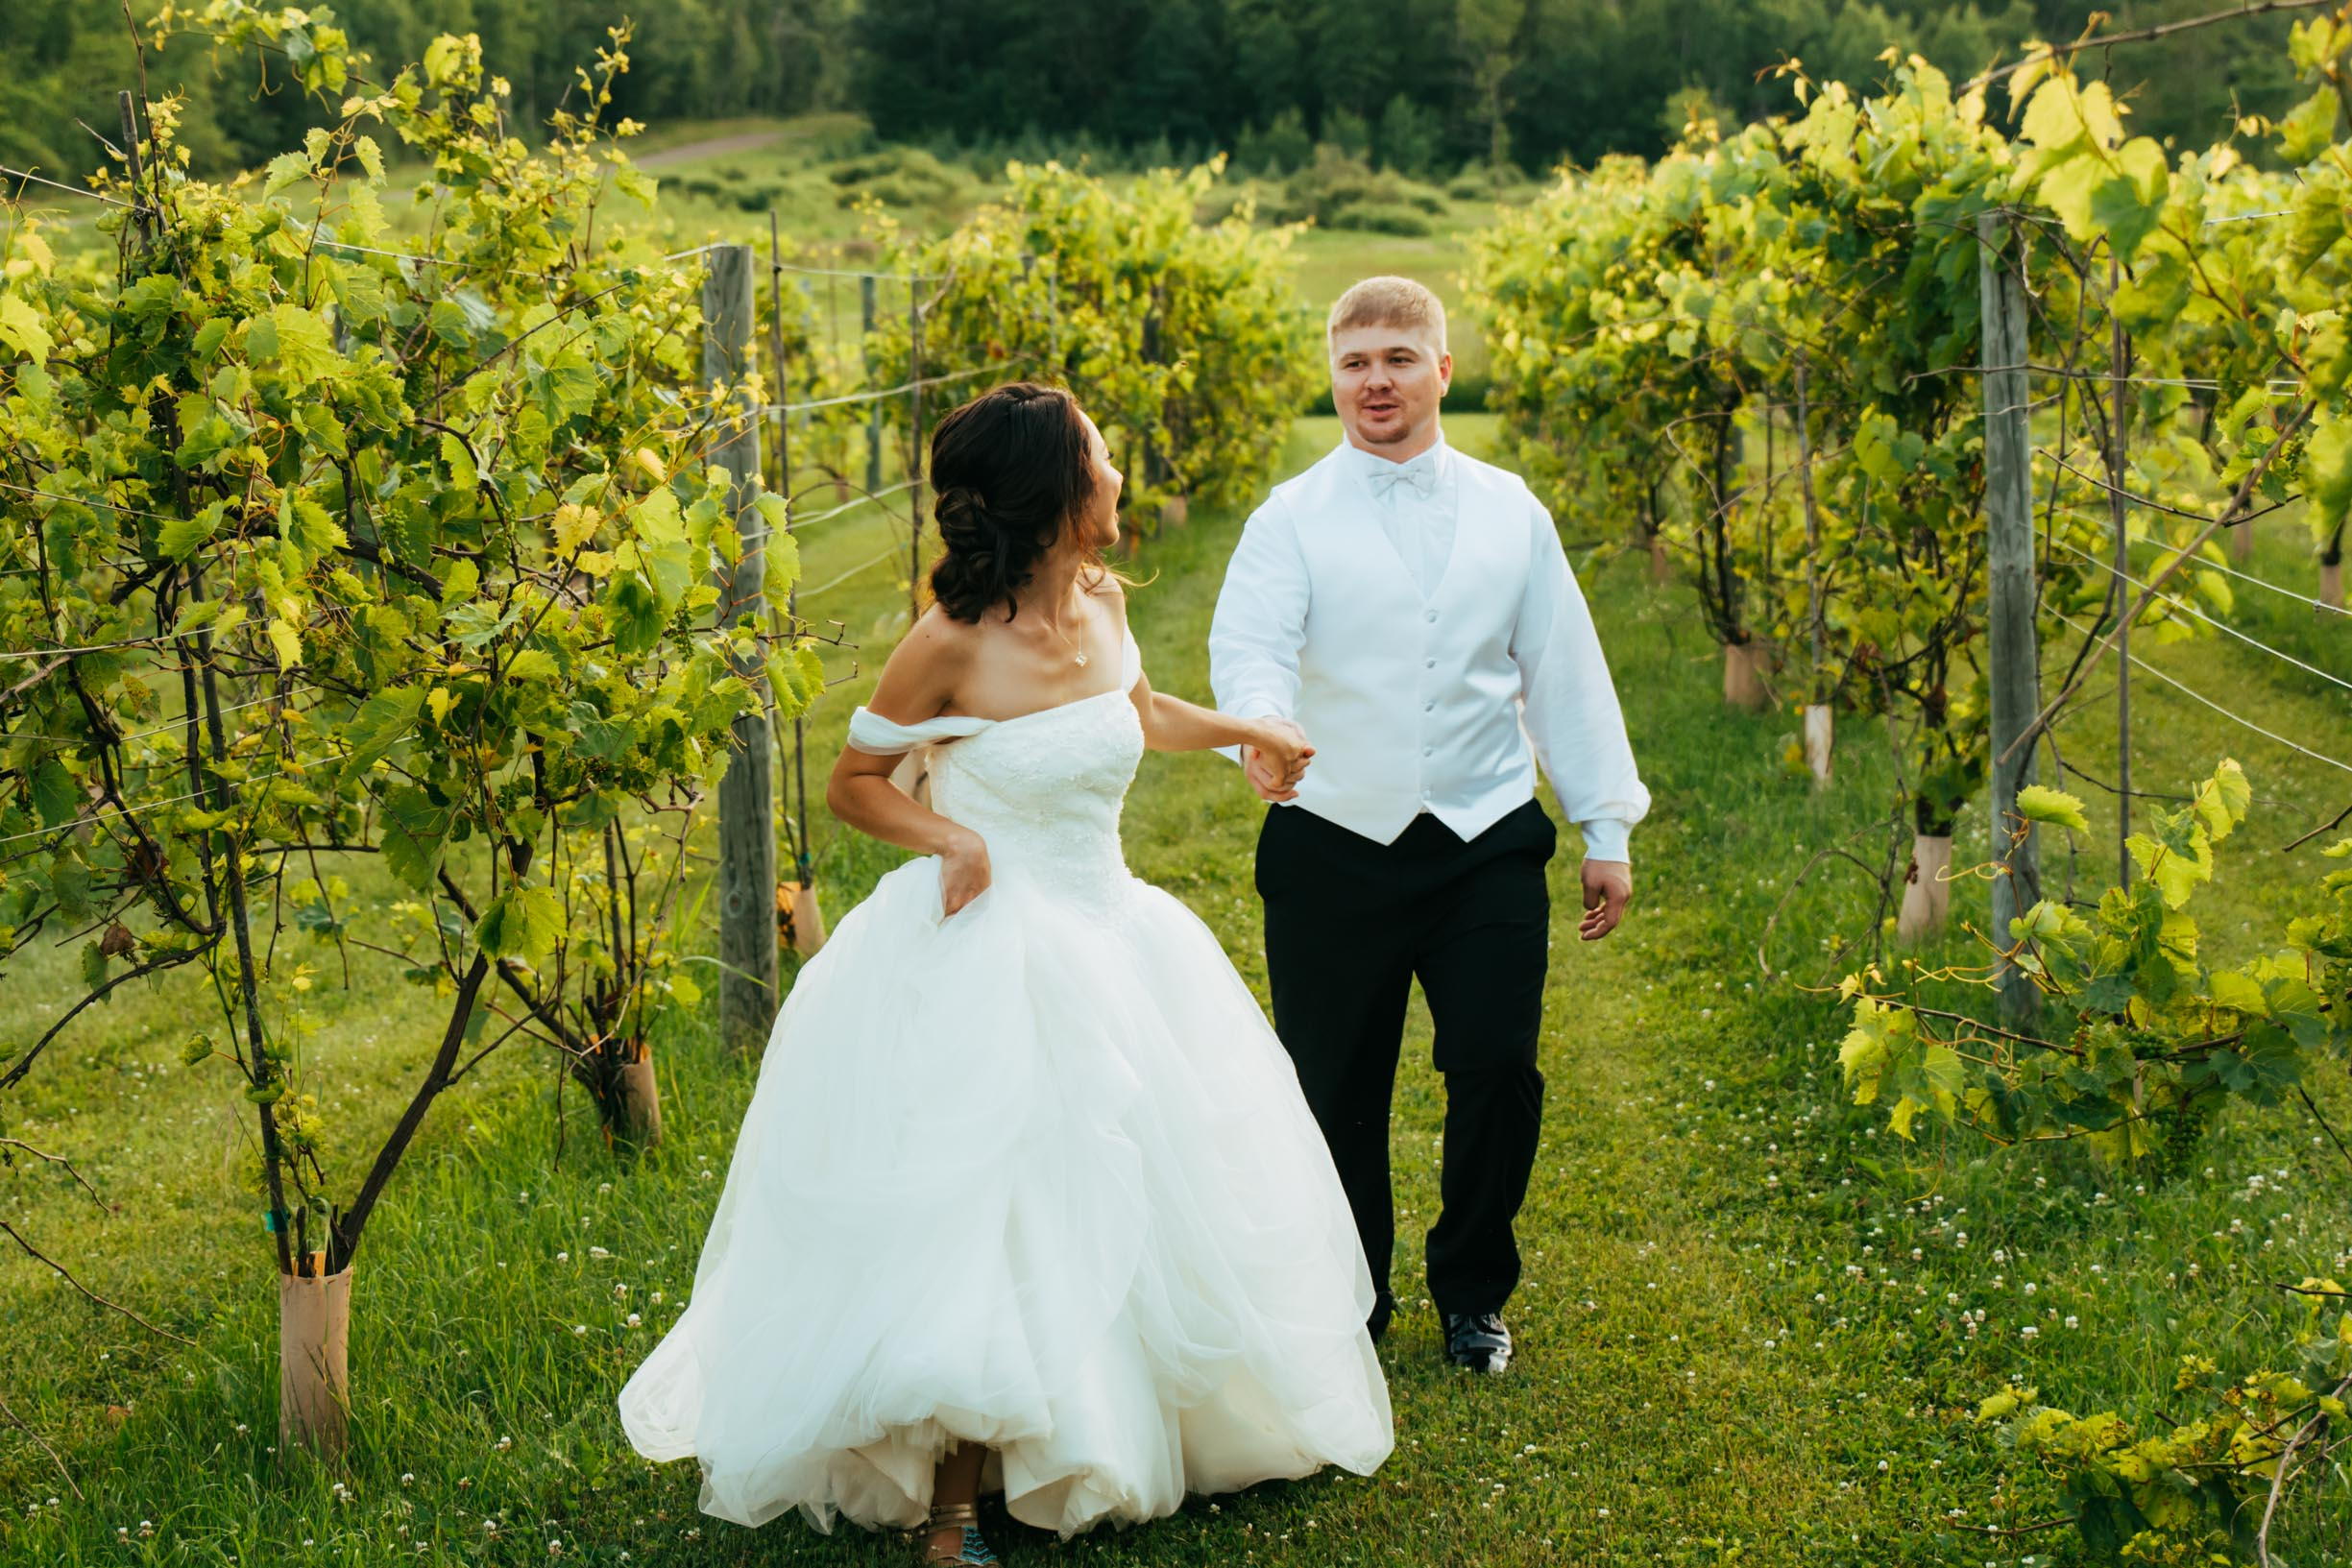 Minnesota_Bride_Groom_Portrait_Sunset_Portraits_Vineyard6.jpg